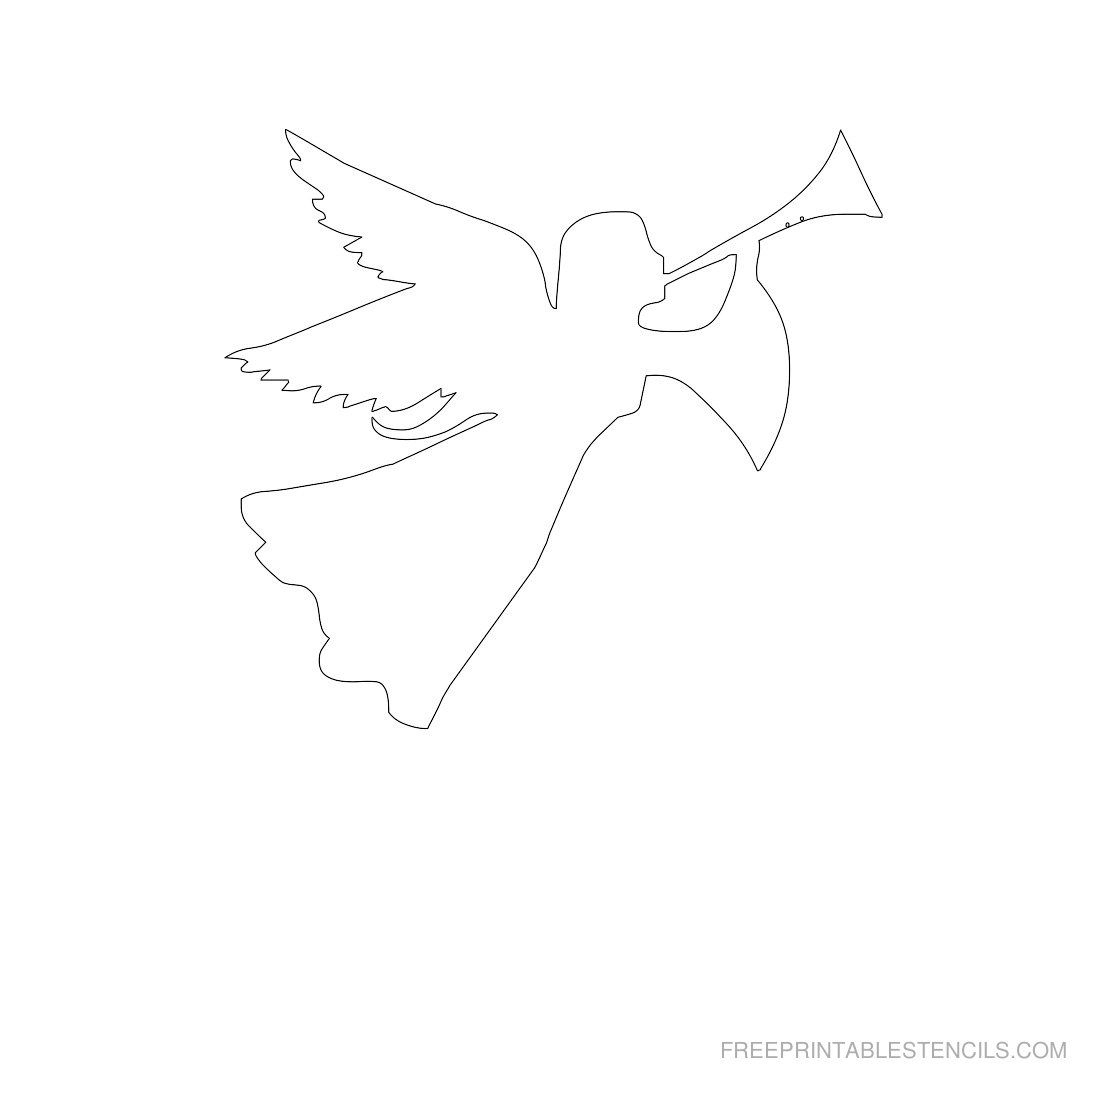 Pinstephanie Bargelski On Angels | Pinterest | Free Stencils - Free Printable Angels